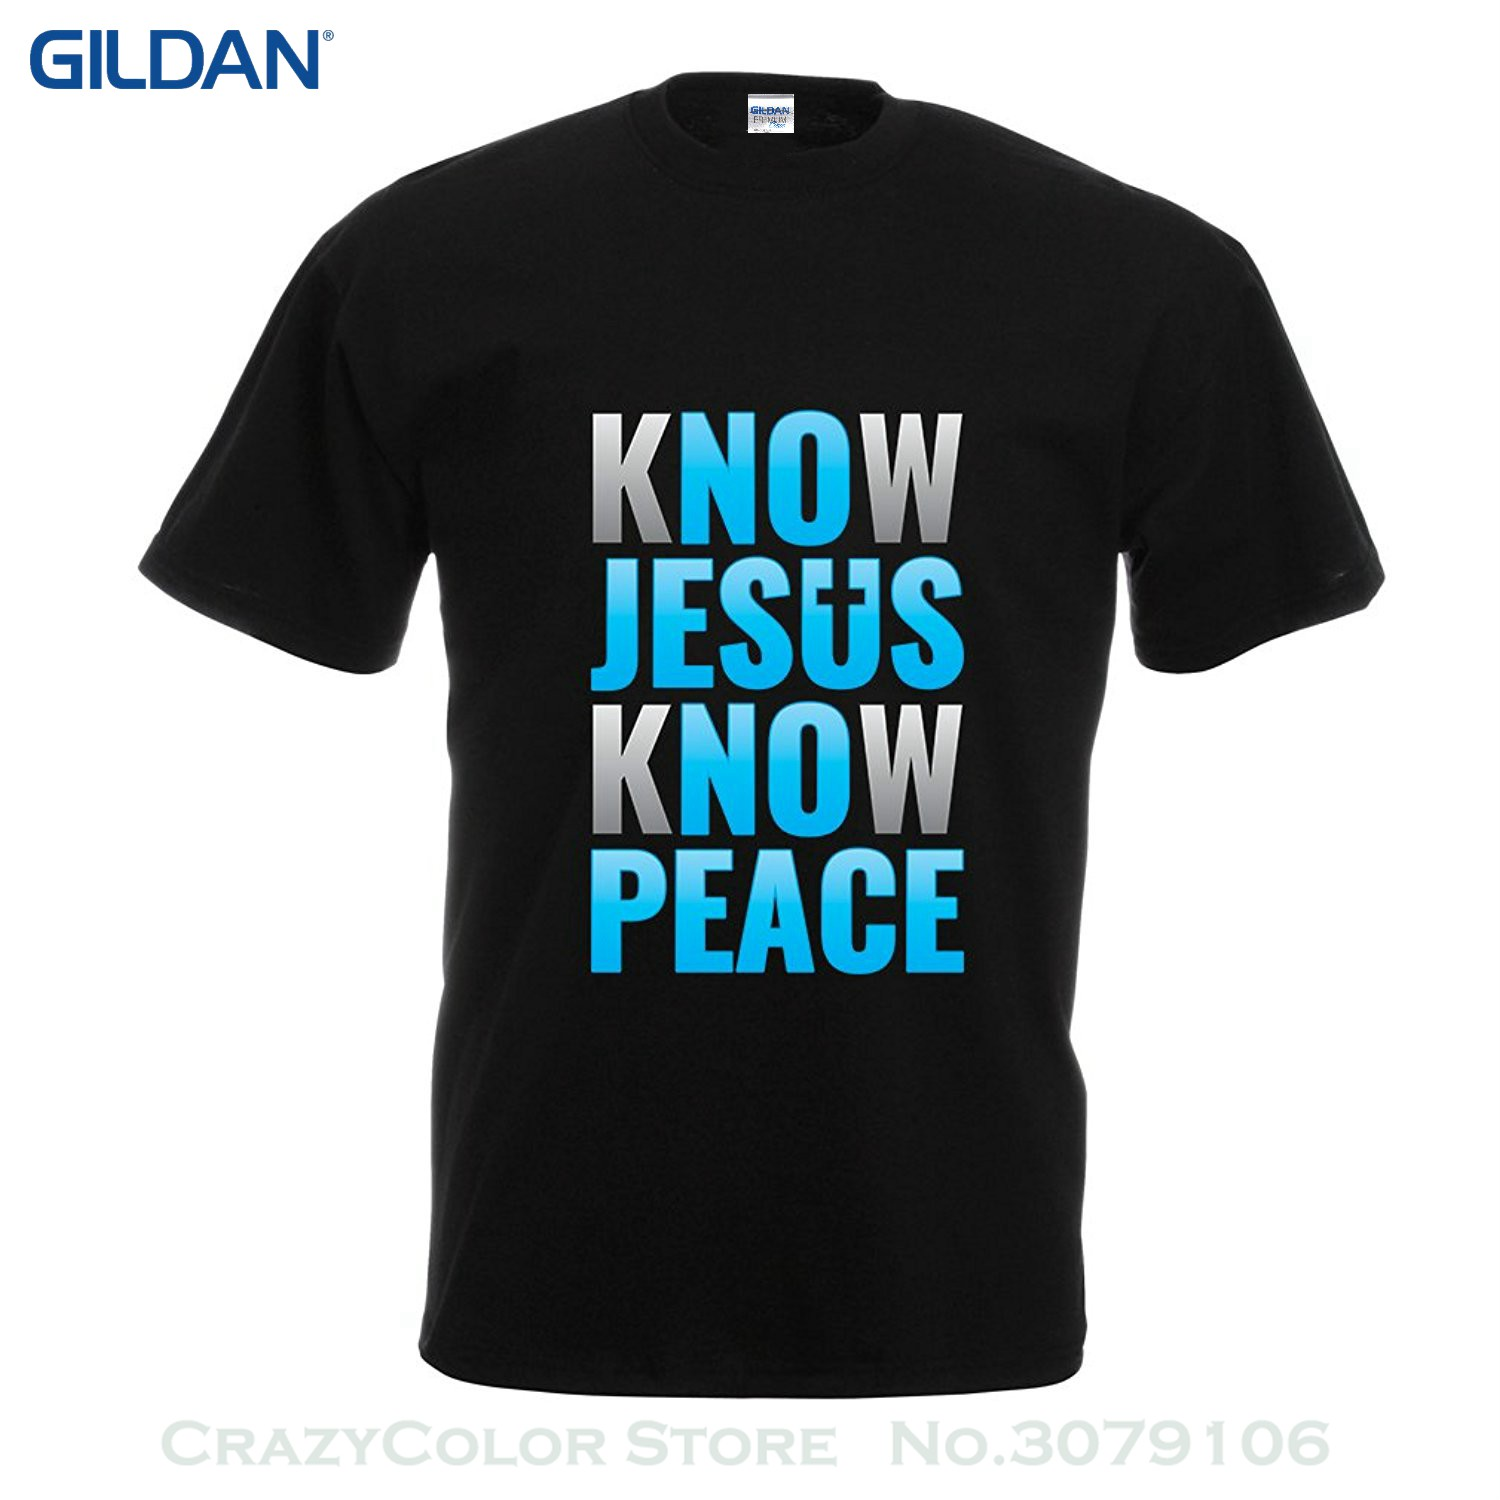 4282d7fd Short Sleeve Mens Formal Shirts T Shirts For Men Know Jesus Know Peace!  Christian Clothing